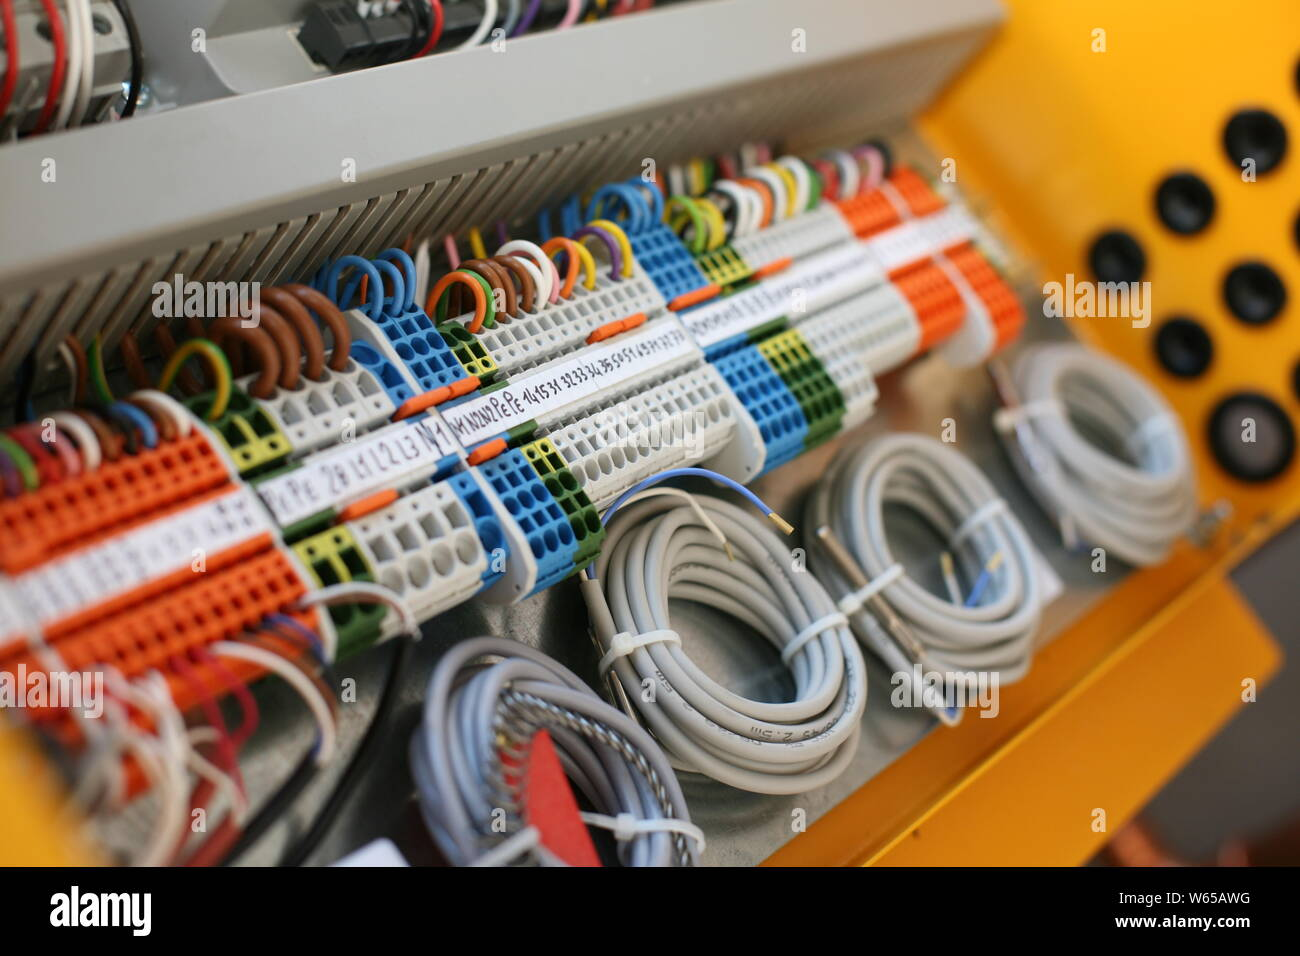 Fuses Stock Photos & Fuses Stock Images - Alamy